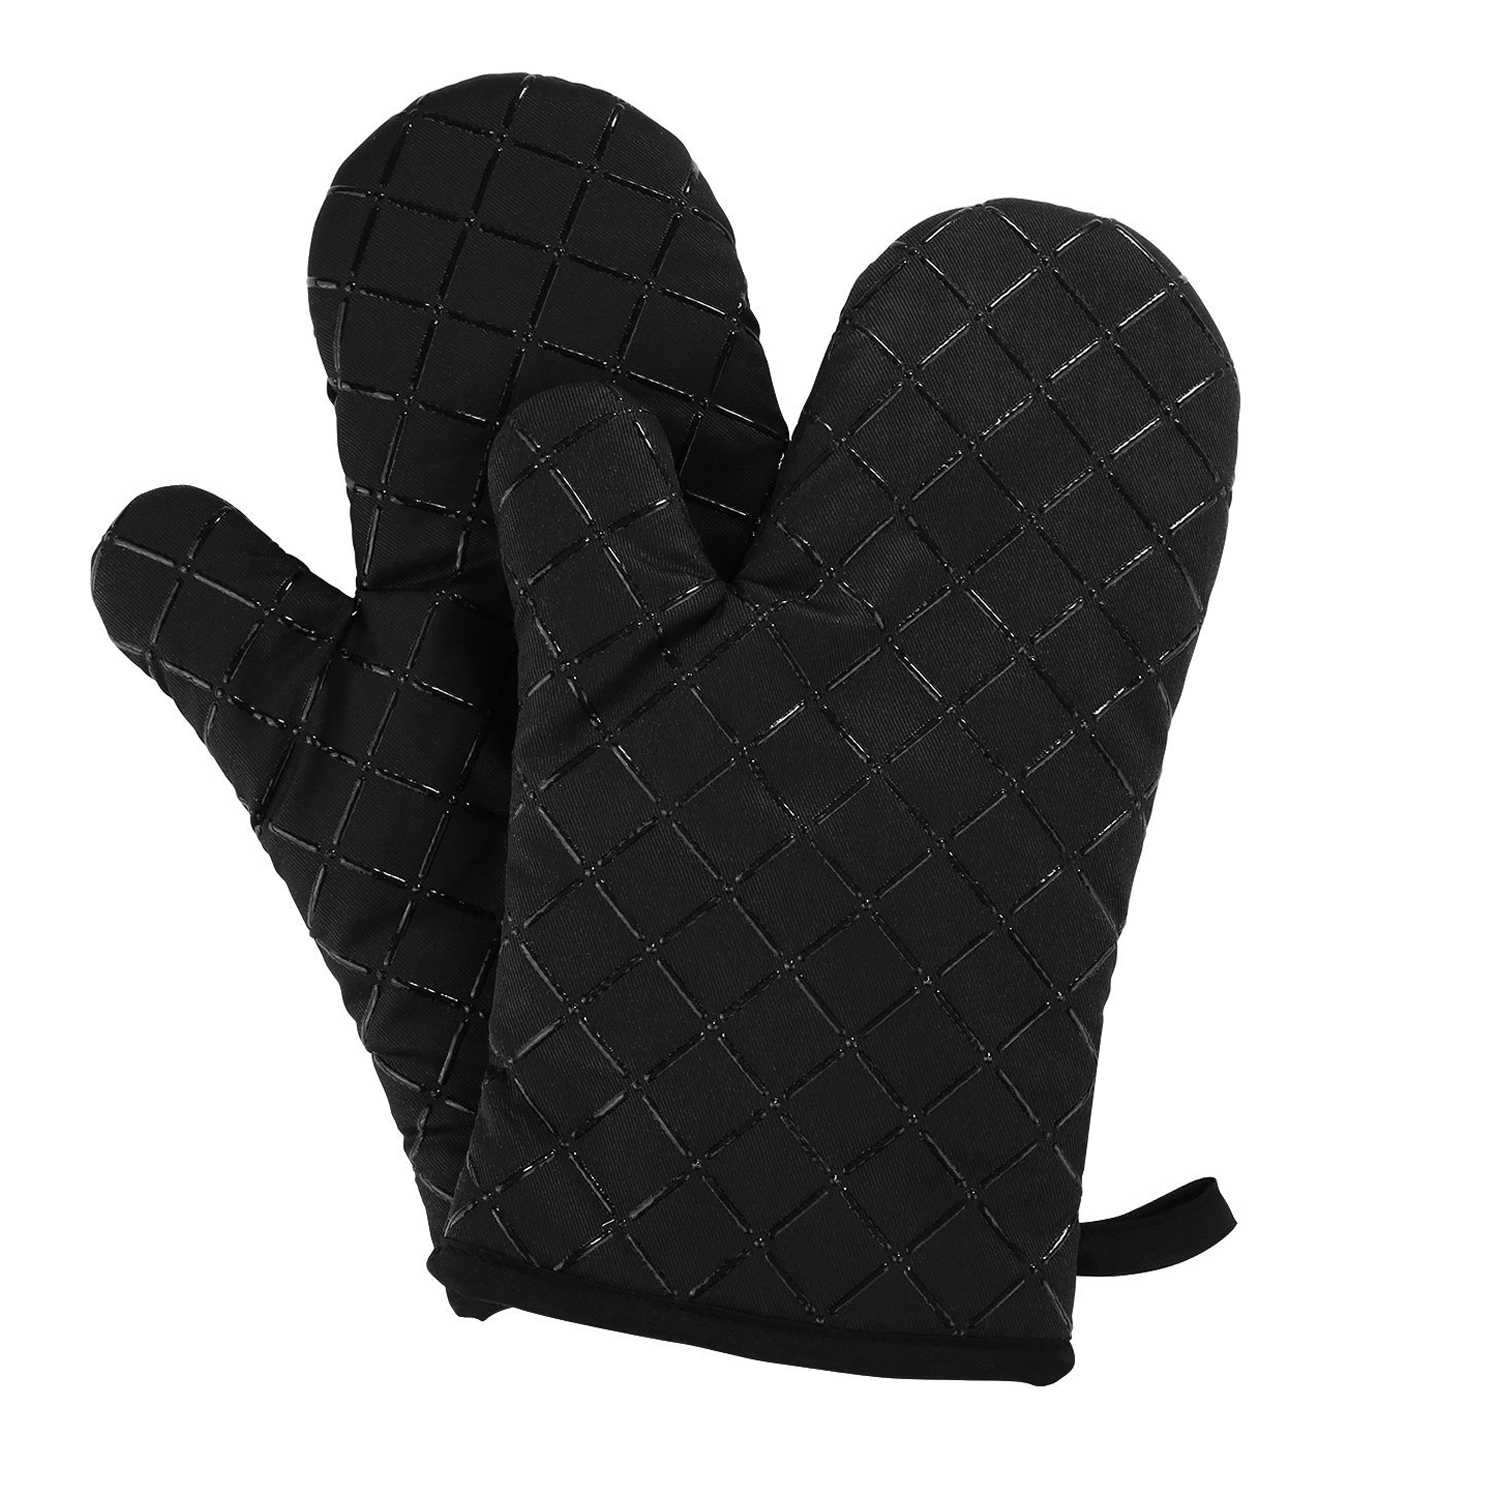 Oven Gloves Non-Slip Kitchen Oven Mitts Heat Resistant Cooking Gloves for Cooking, Baking, Barbecue Potholder, Black, 1 Pair